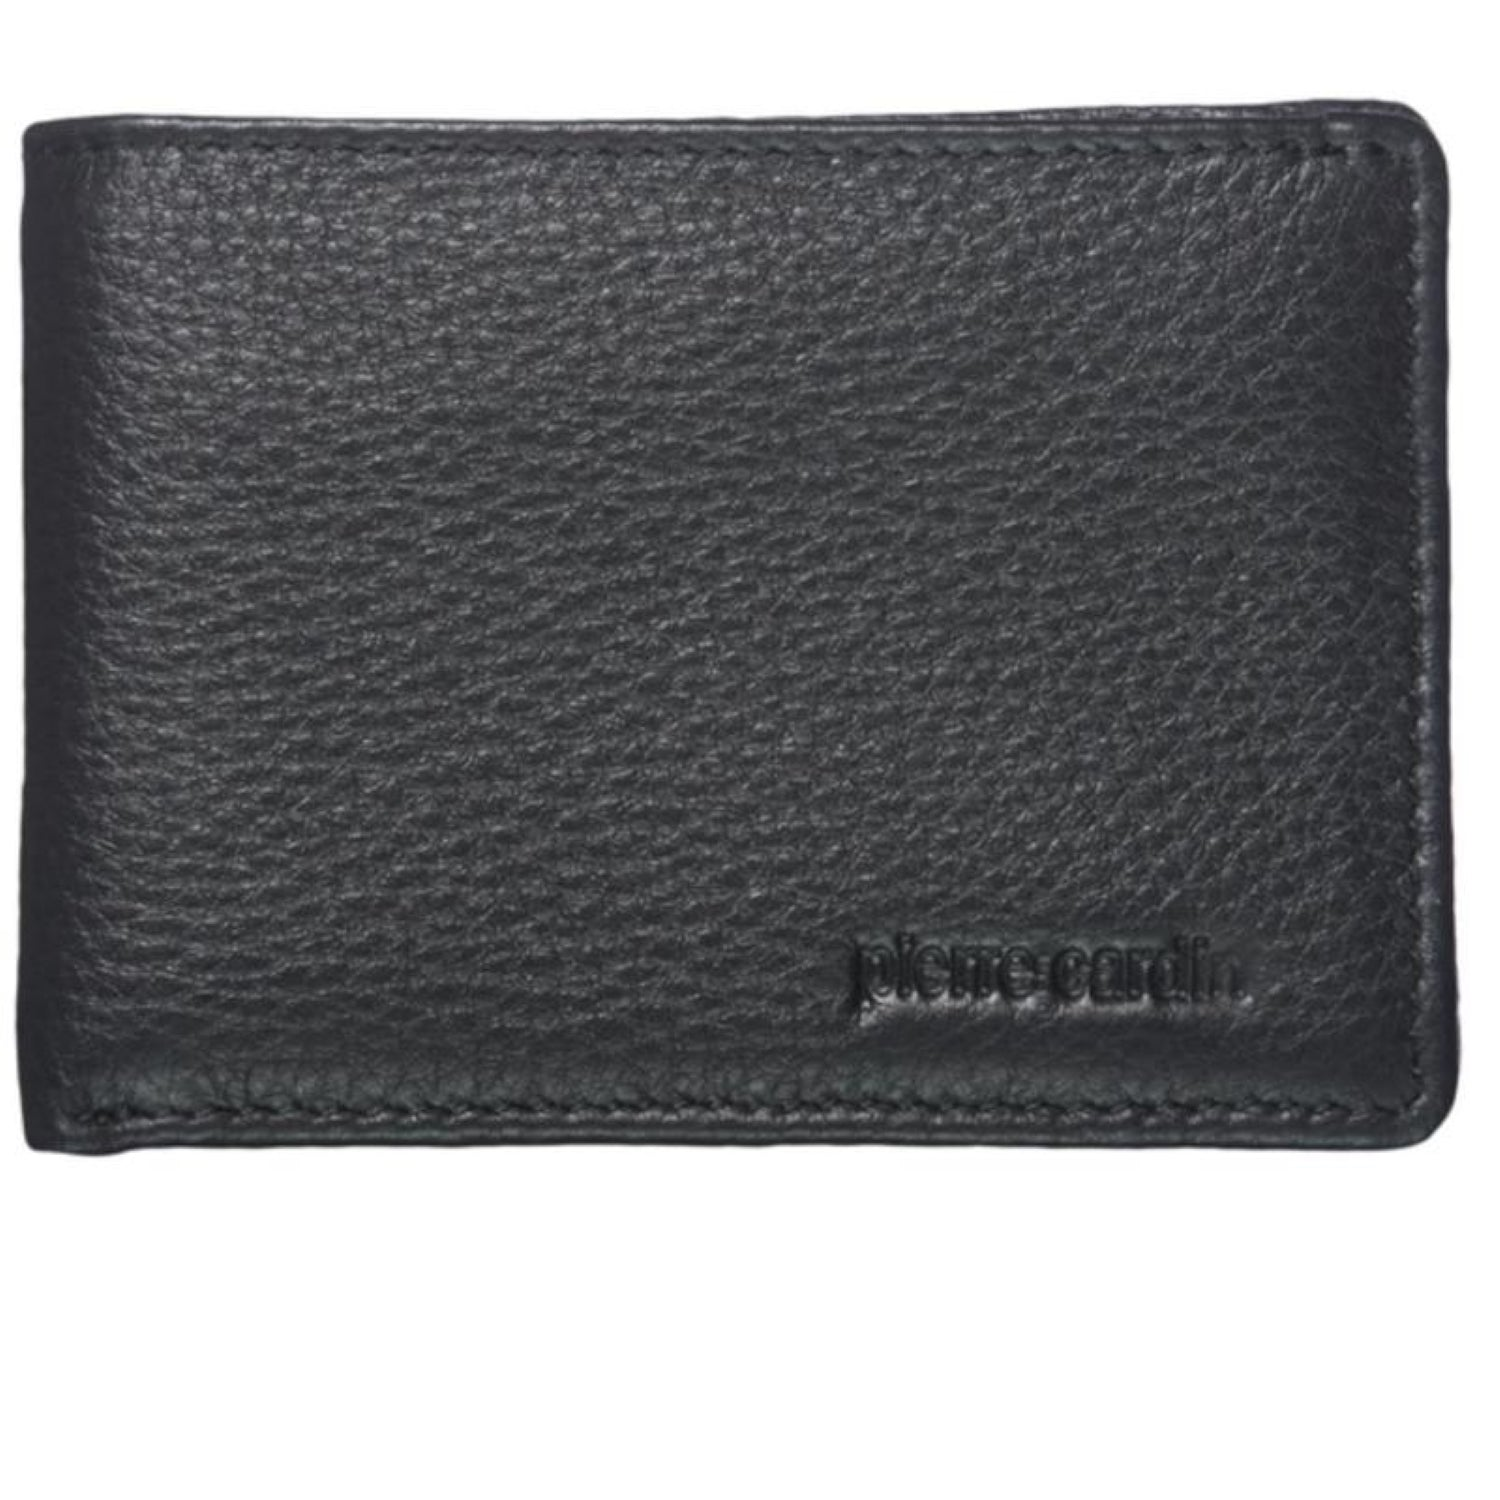 Pierre Cardin PC1160 BLACK MENS WALLET - RFID Italian Leather